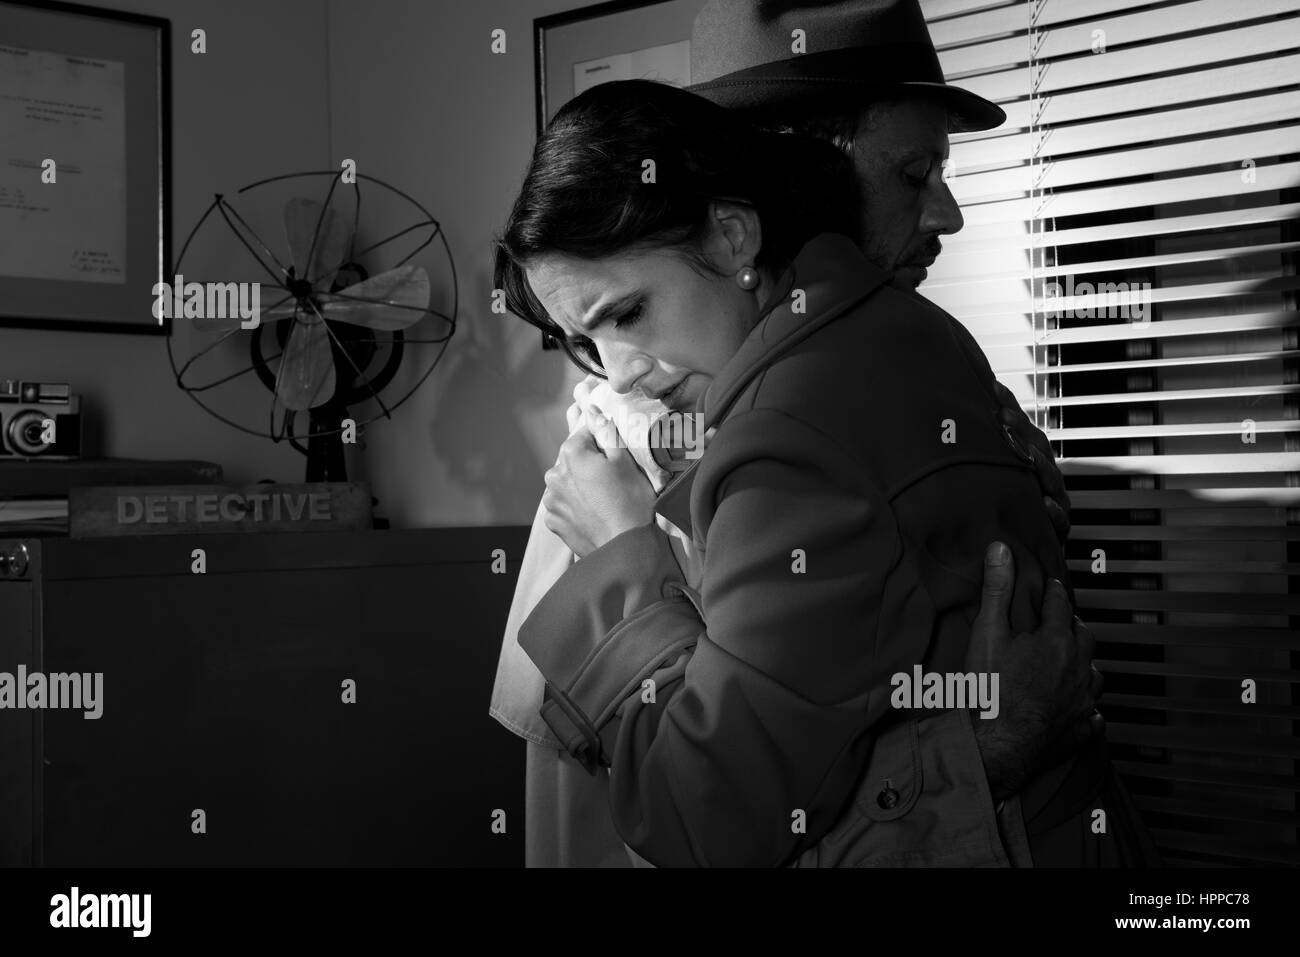 Detective consoling and hugging a young woman in his office, film noir scene. - Stock Image